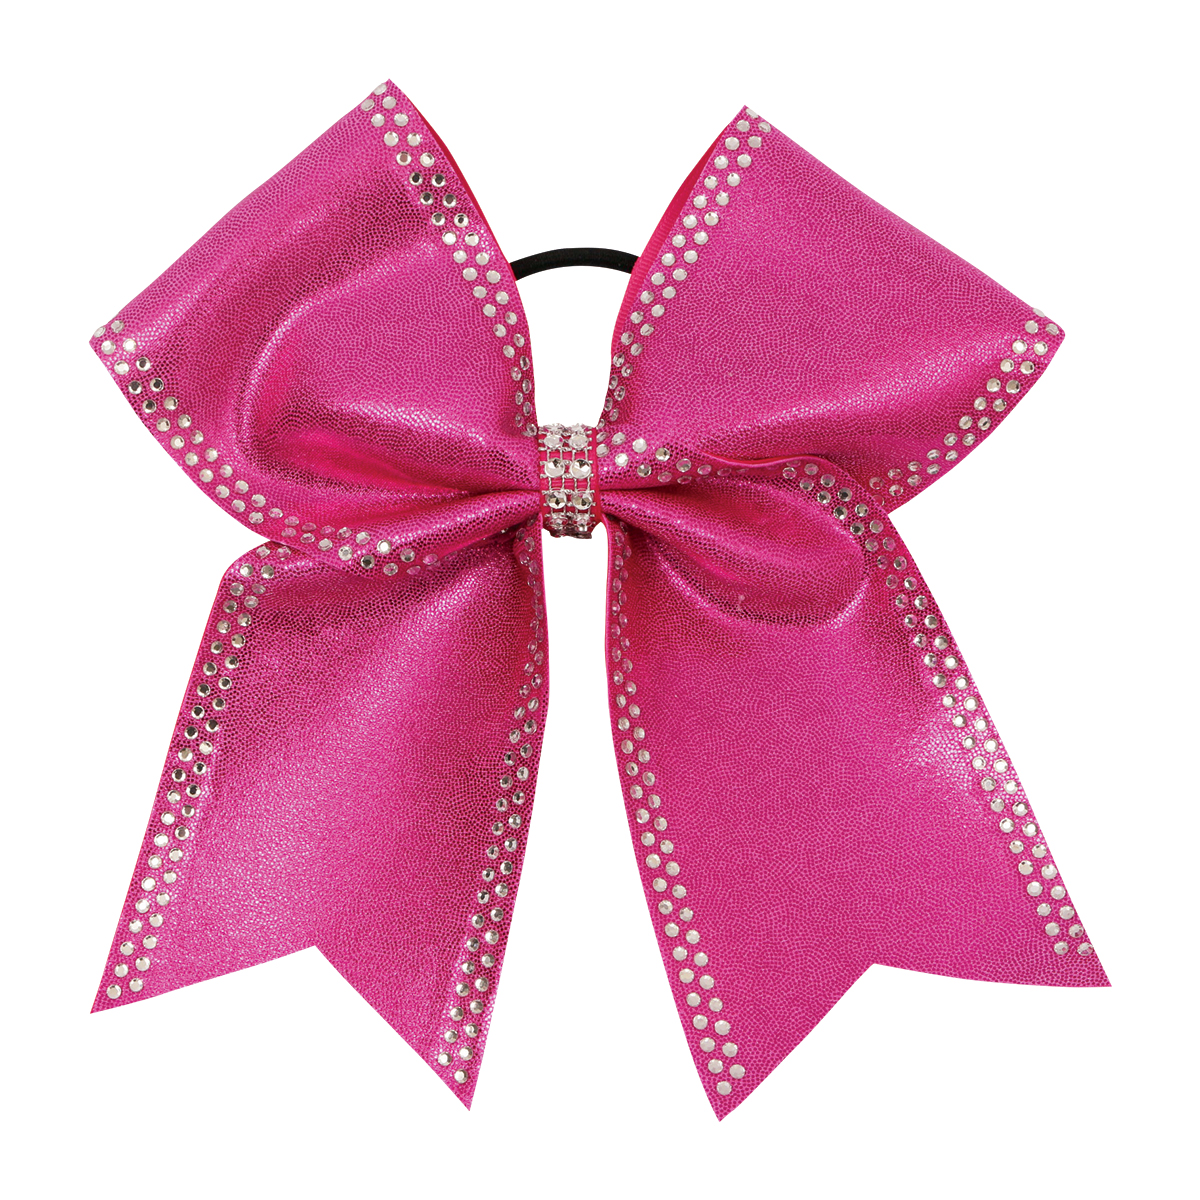 American Flag Bow High Quality Cheerleading Uniforms Cheer Shoes Cheer Bows Cheer Accessories And More Superior Cheer